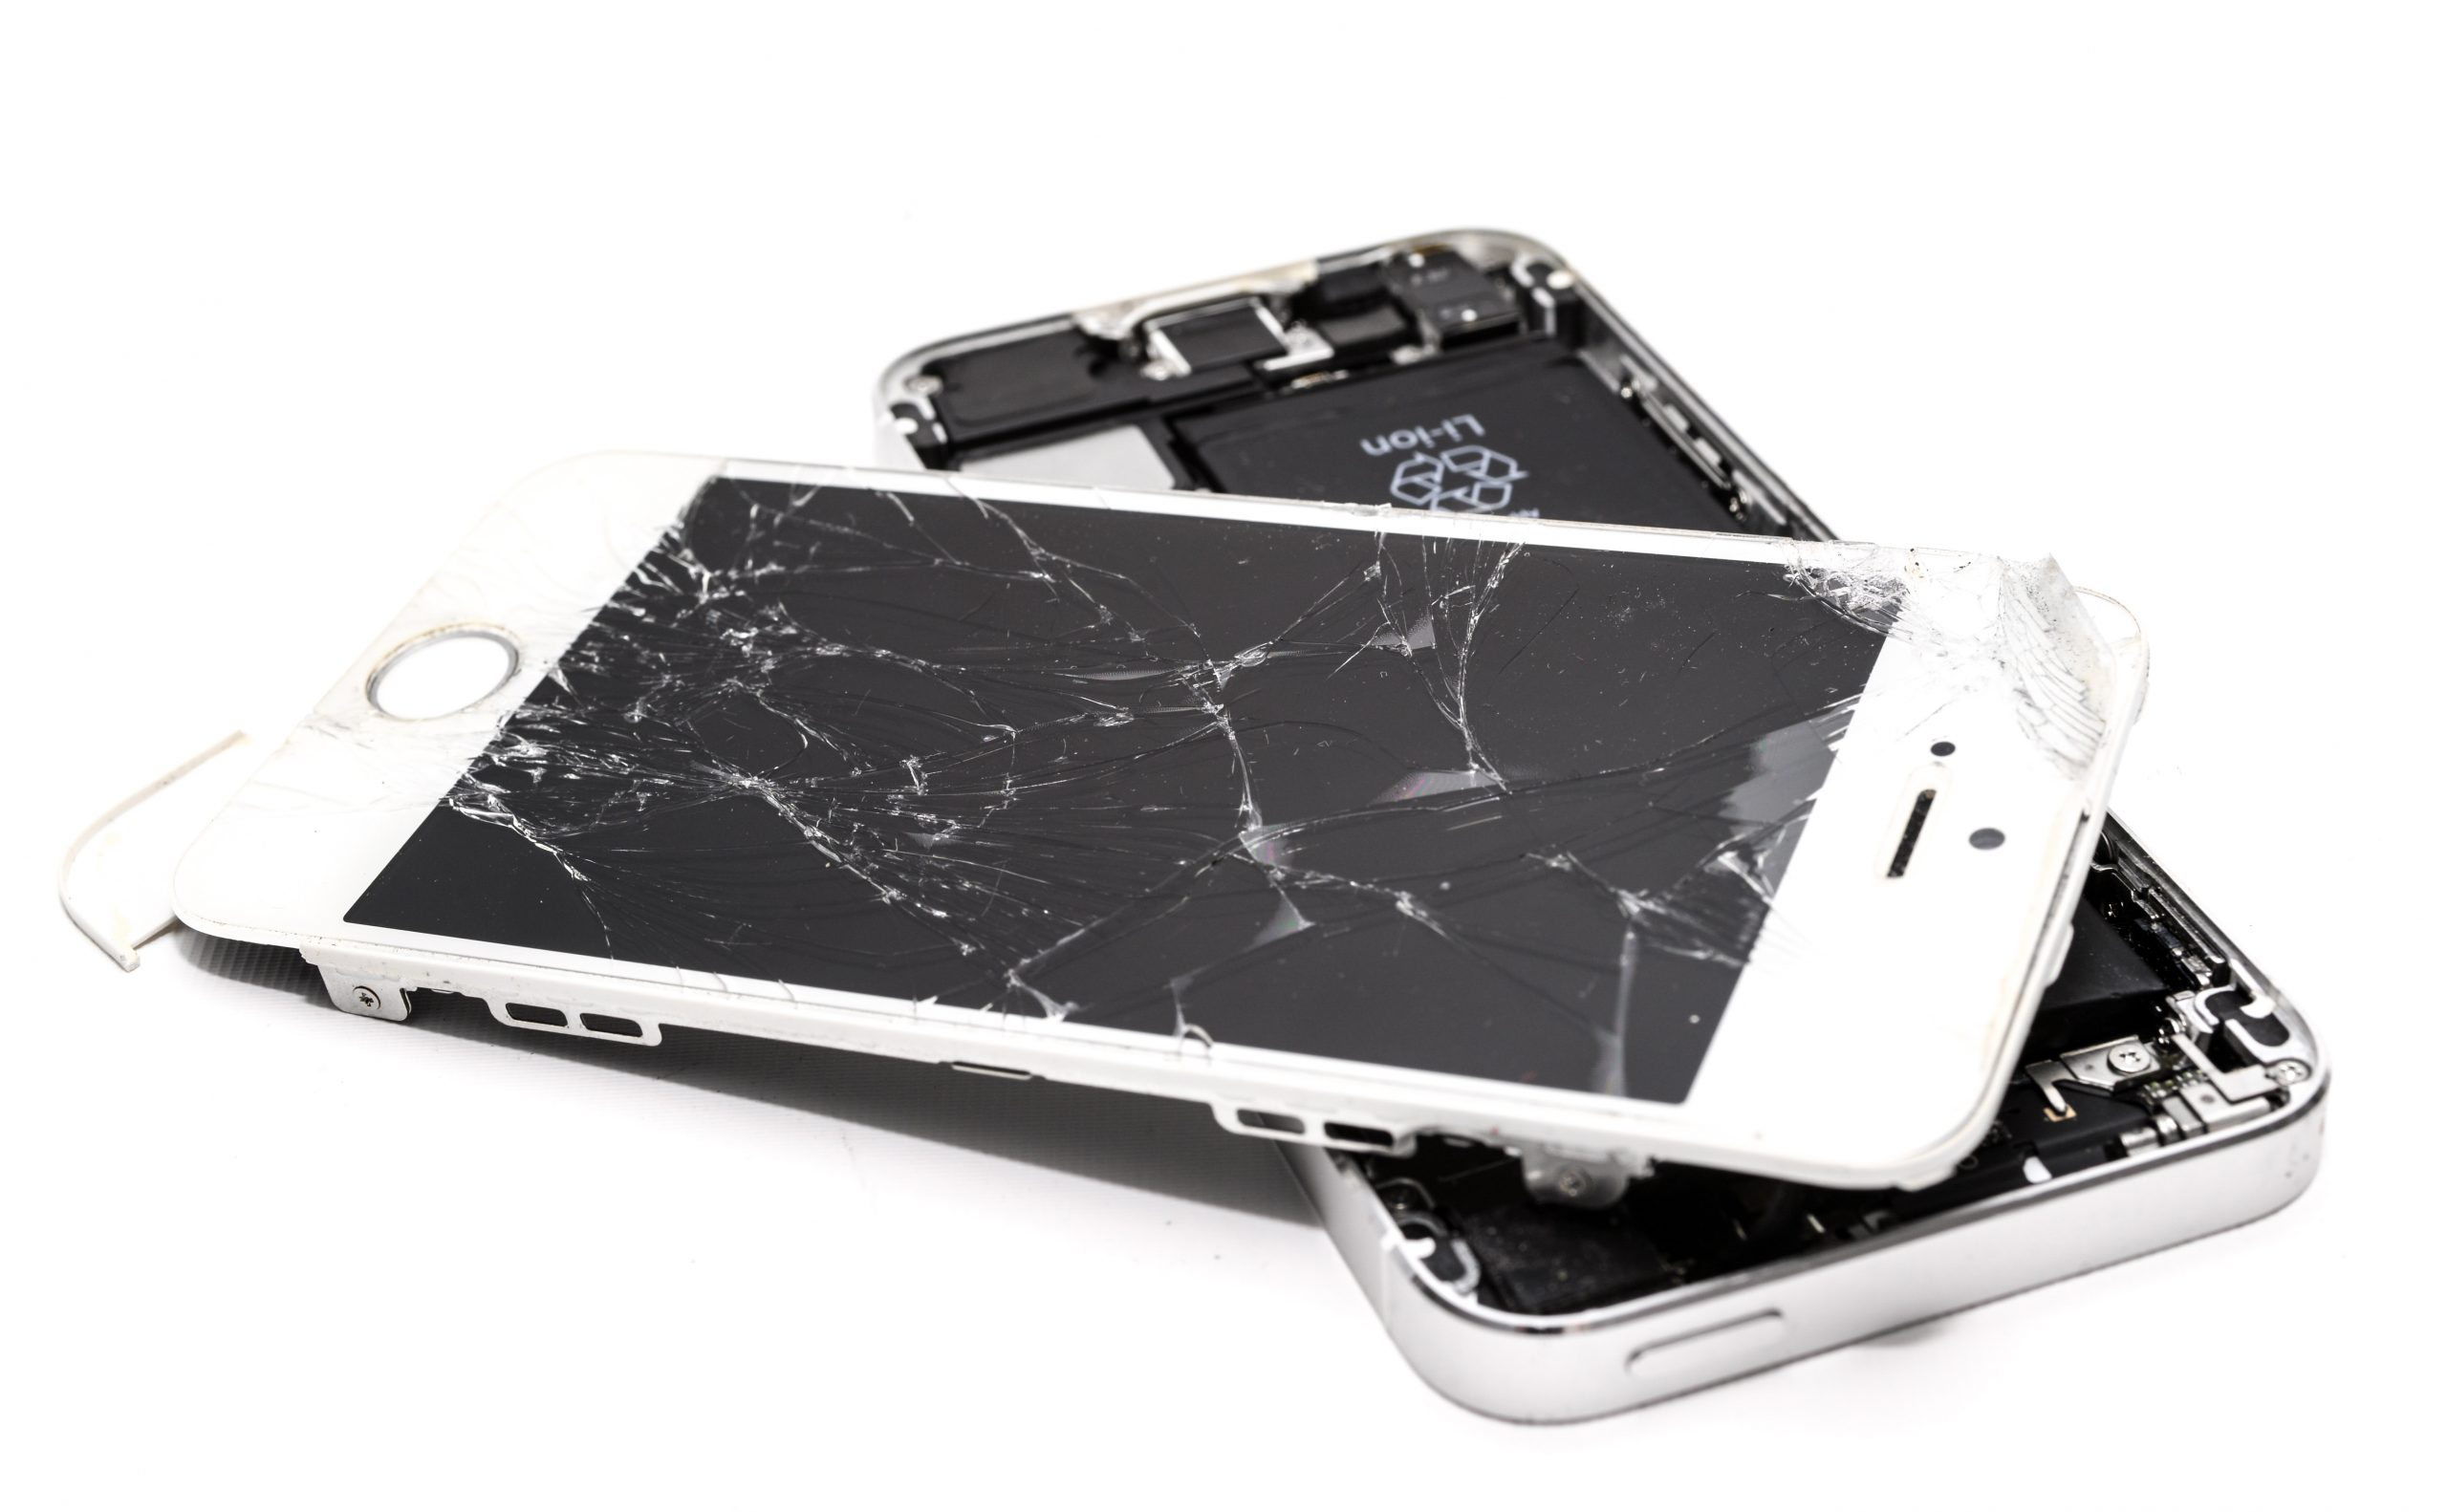 wrecked-iphone-1388947